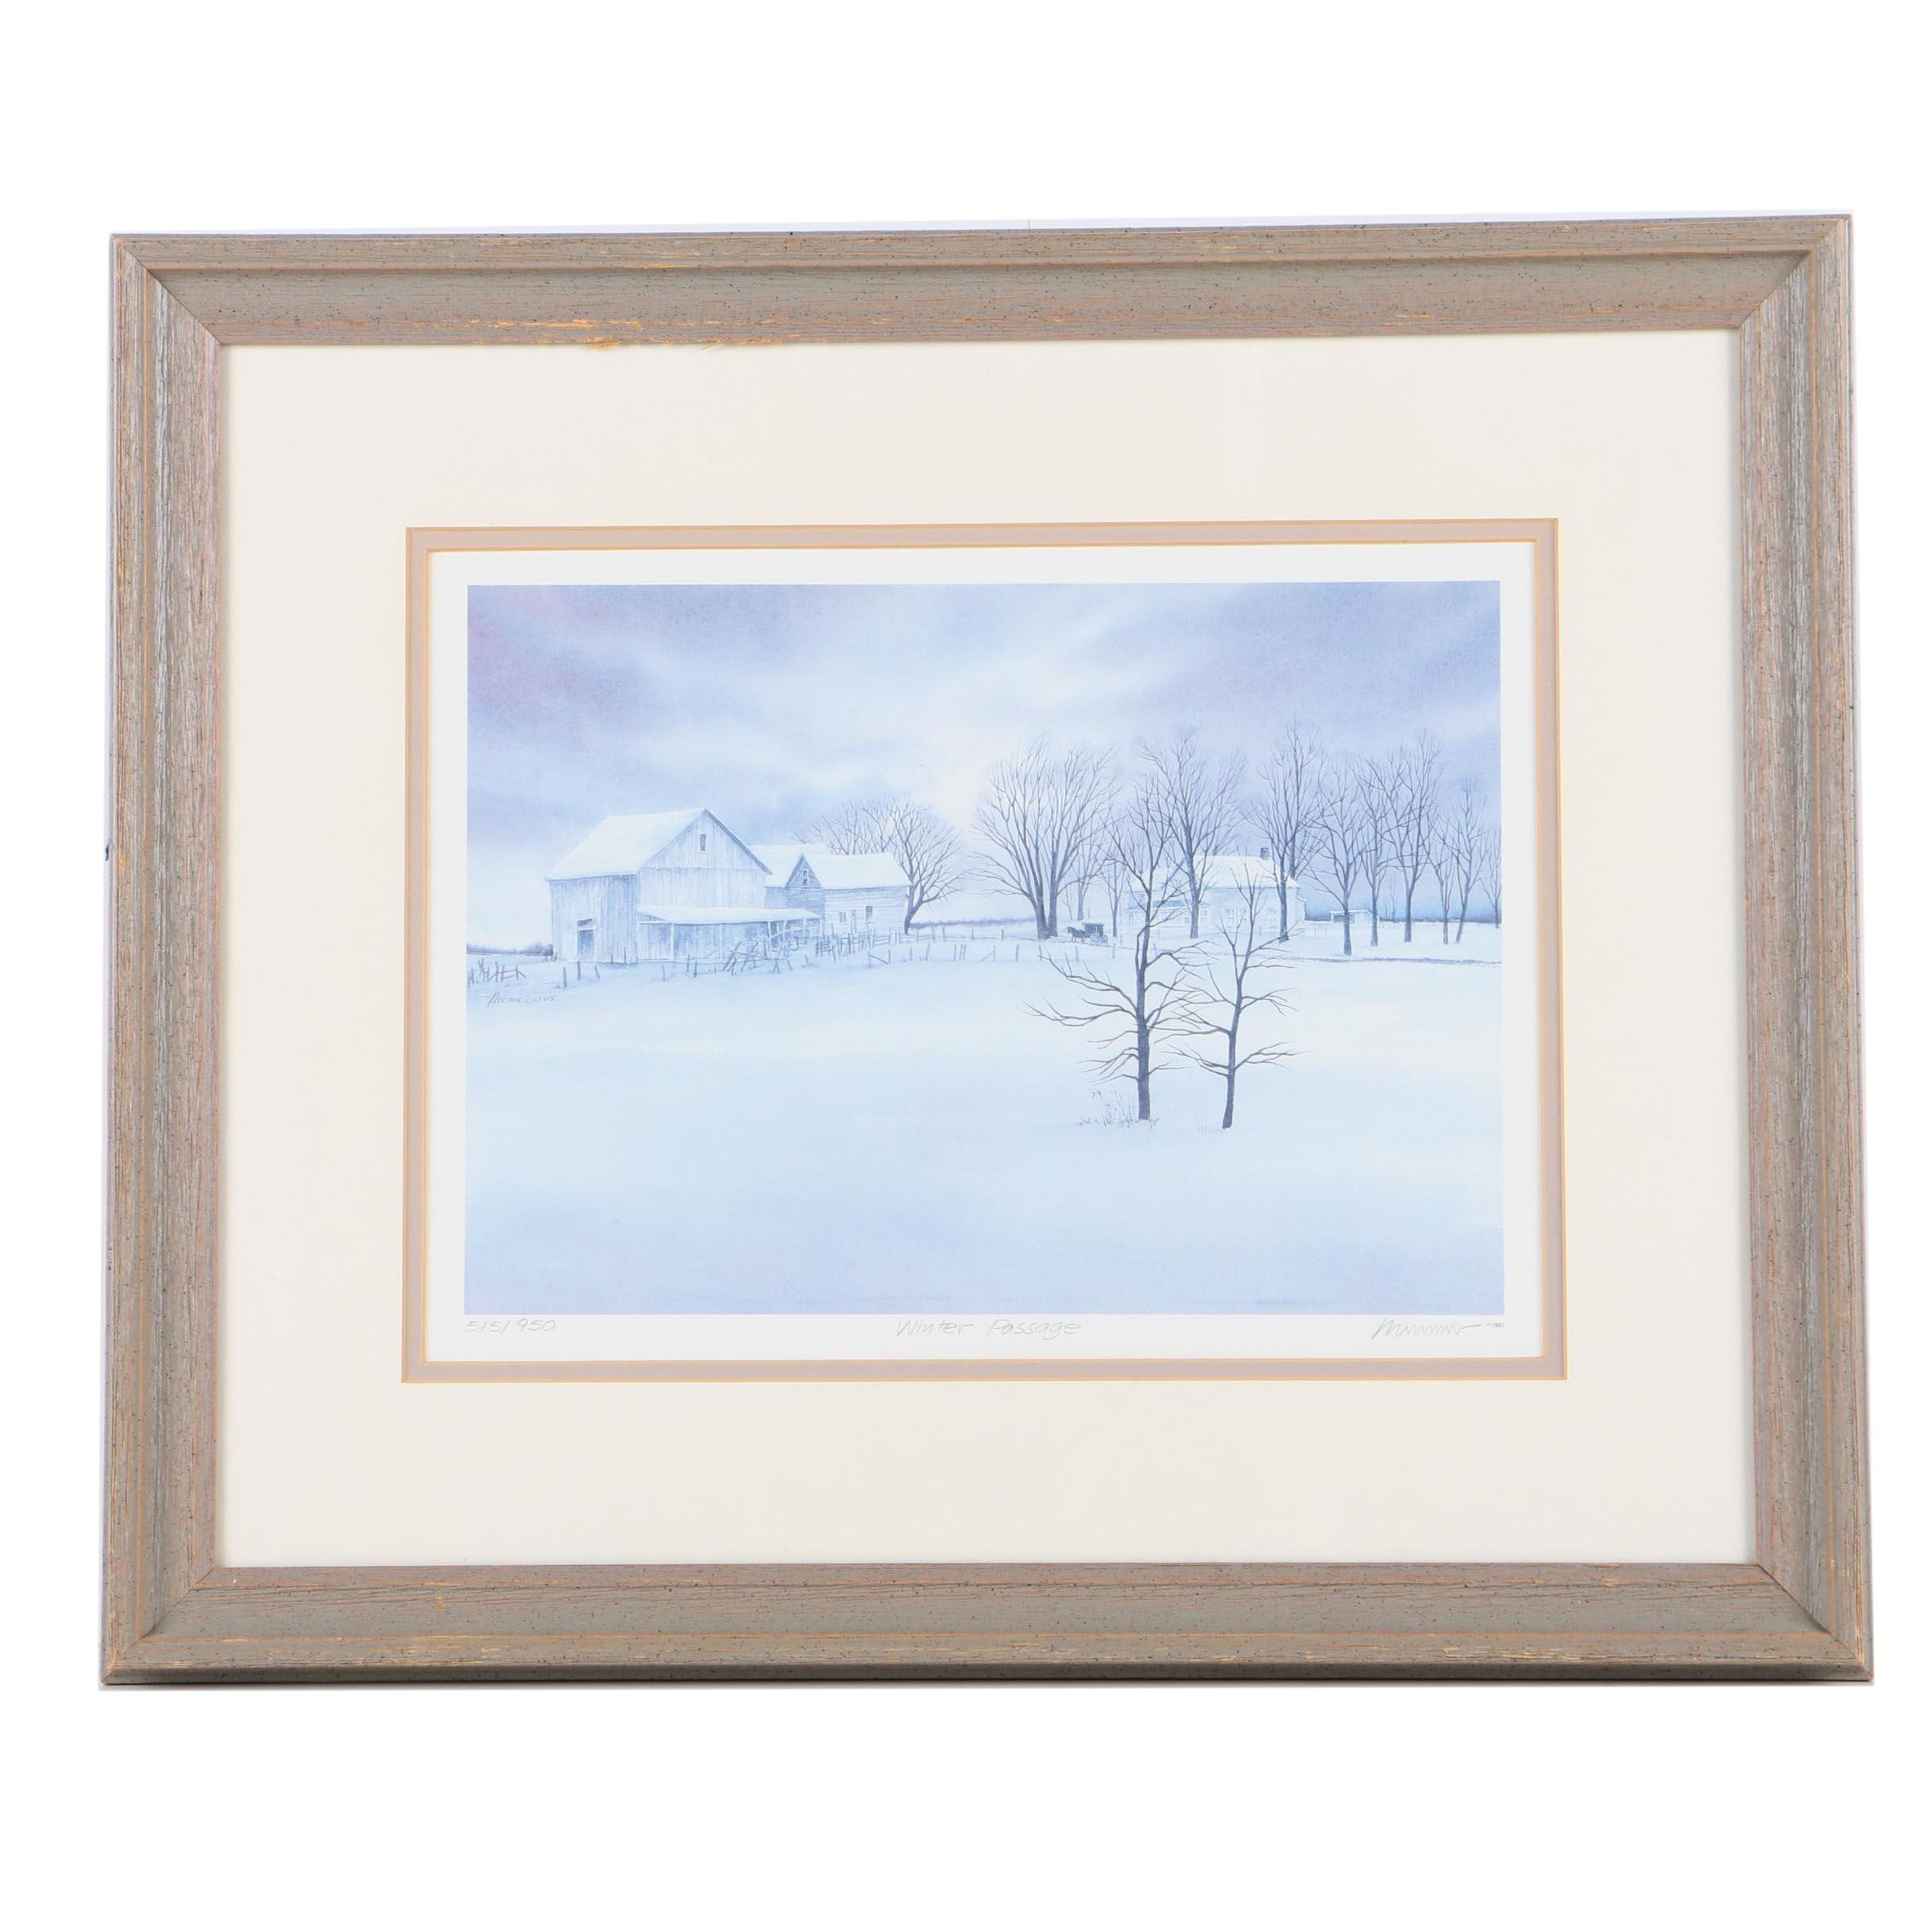 Limited Edition Offset Lithograph On Paper Quot Winter Passage